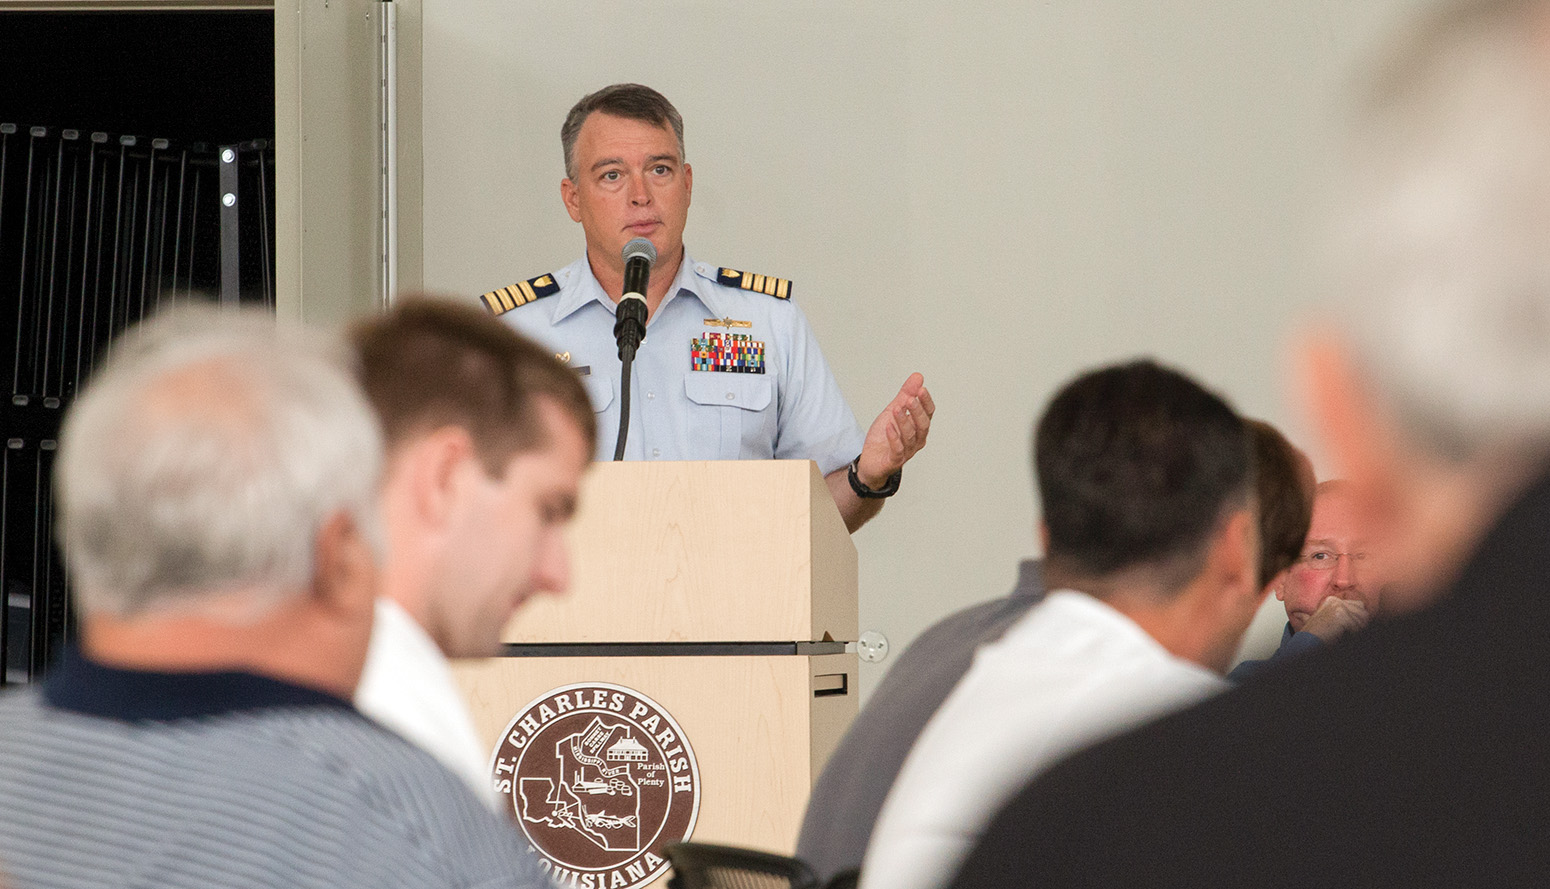 Capt. Wayne Arguin, captain of the Port of New Orleans speaks during CAMO workshop. (Photo by Frank McCormack)